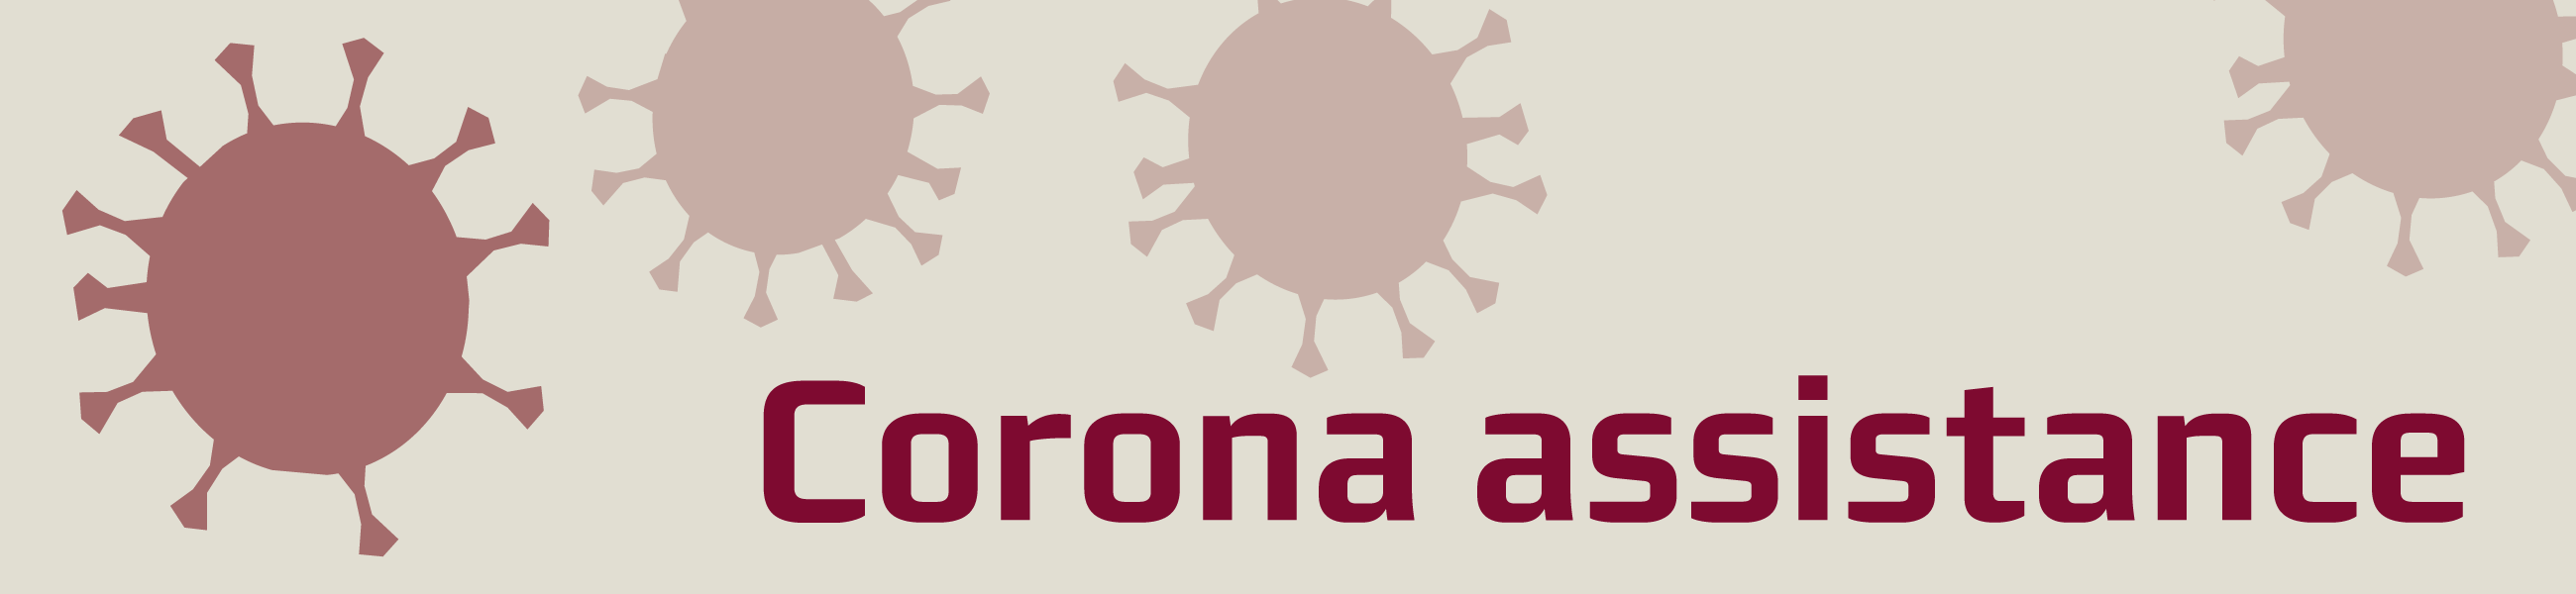 corona-assistance2600x600.png